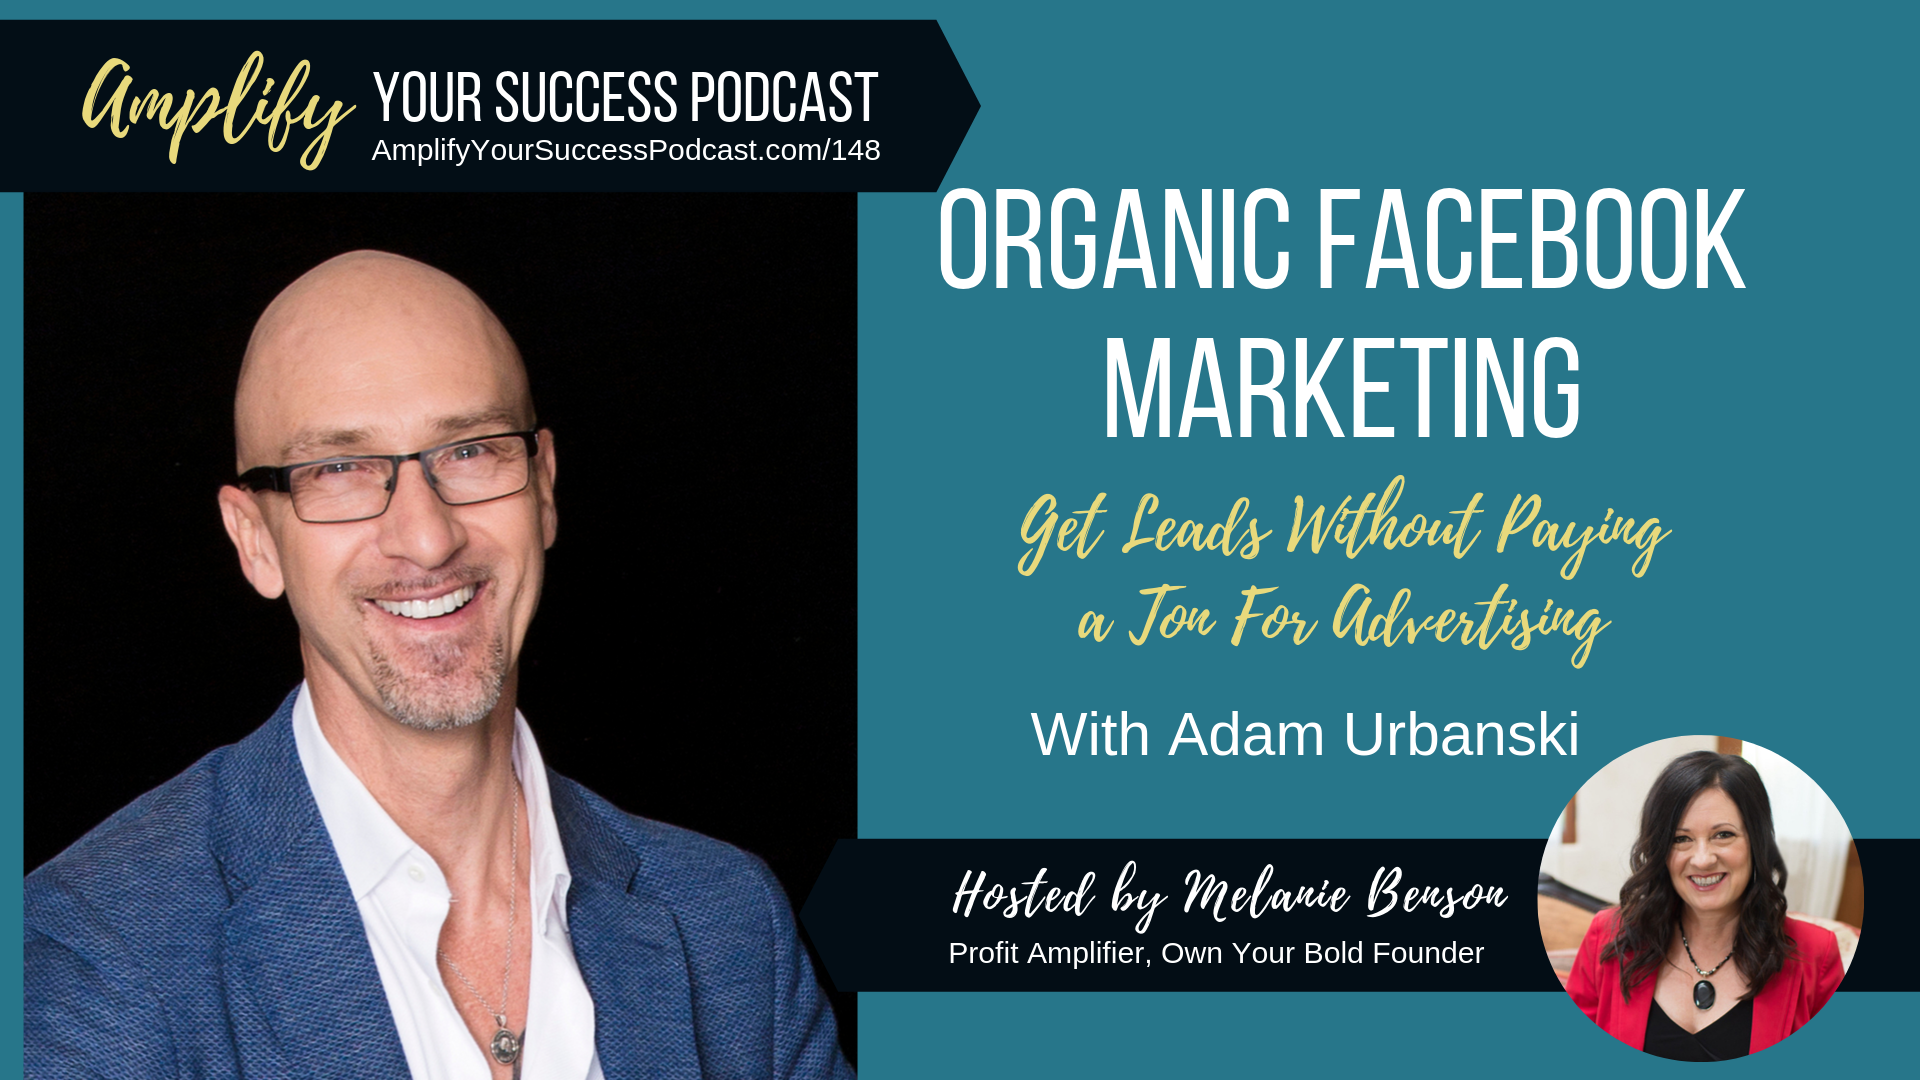 Organic Facebook Marketing: Get Leads Without Paying a Ton For Advertising